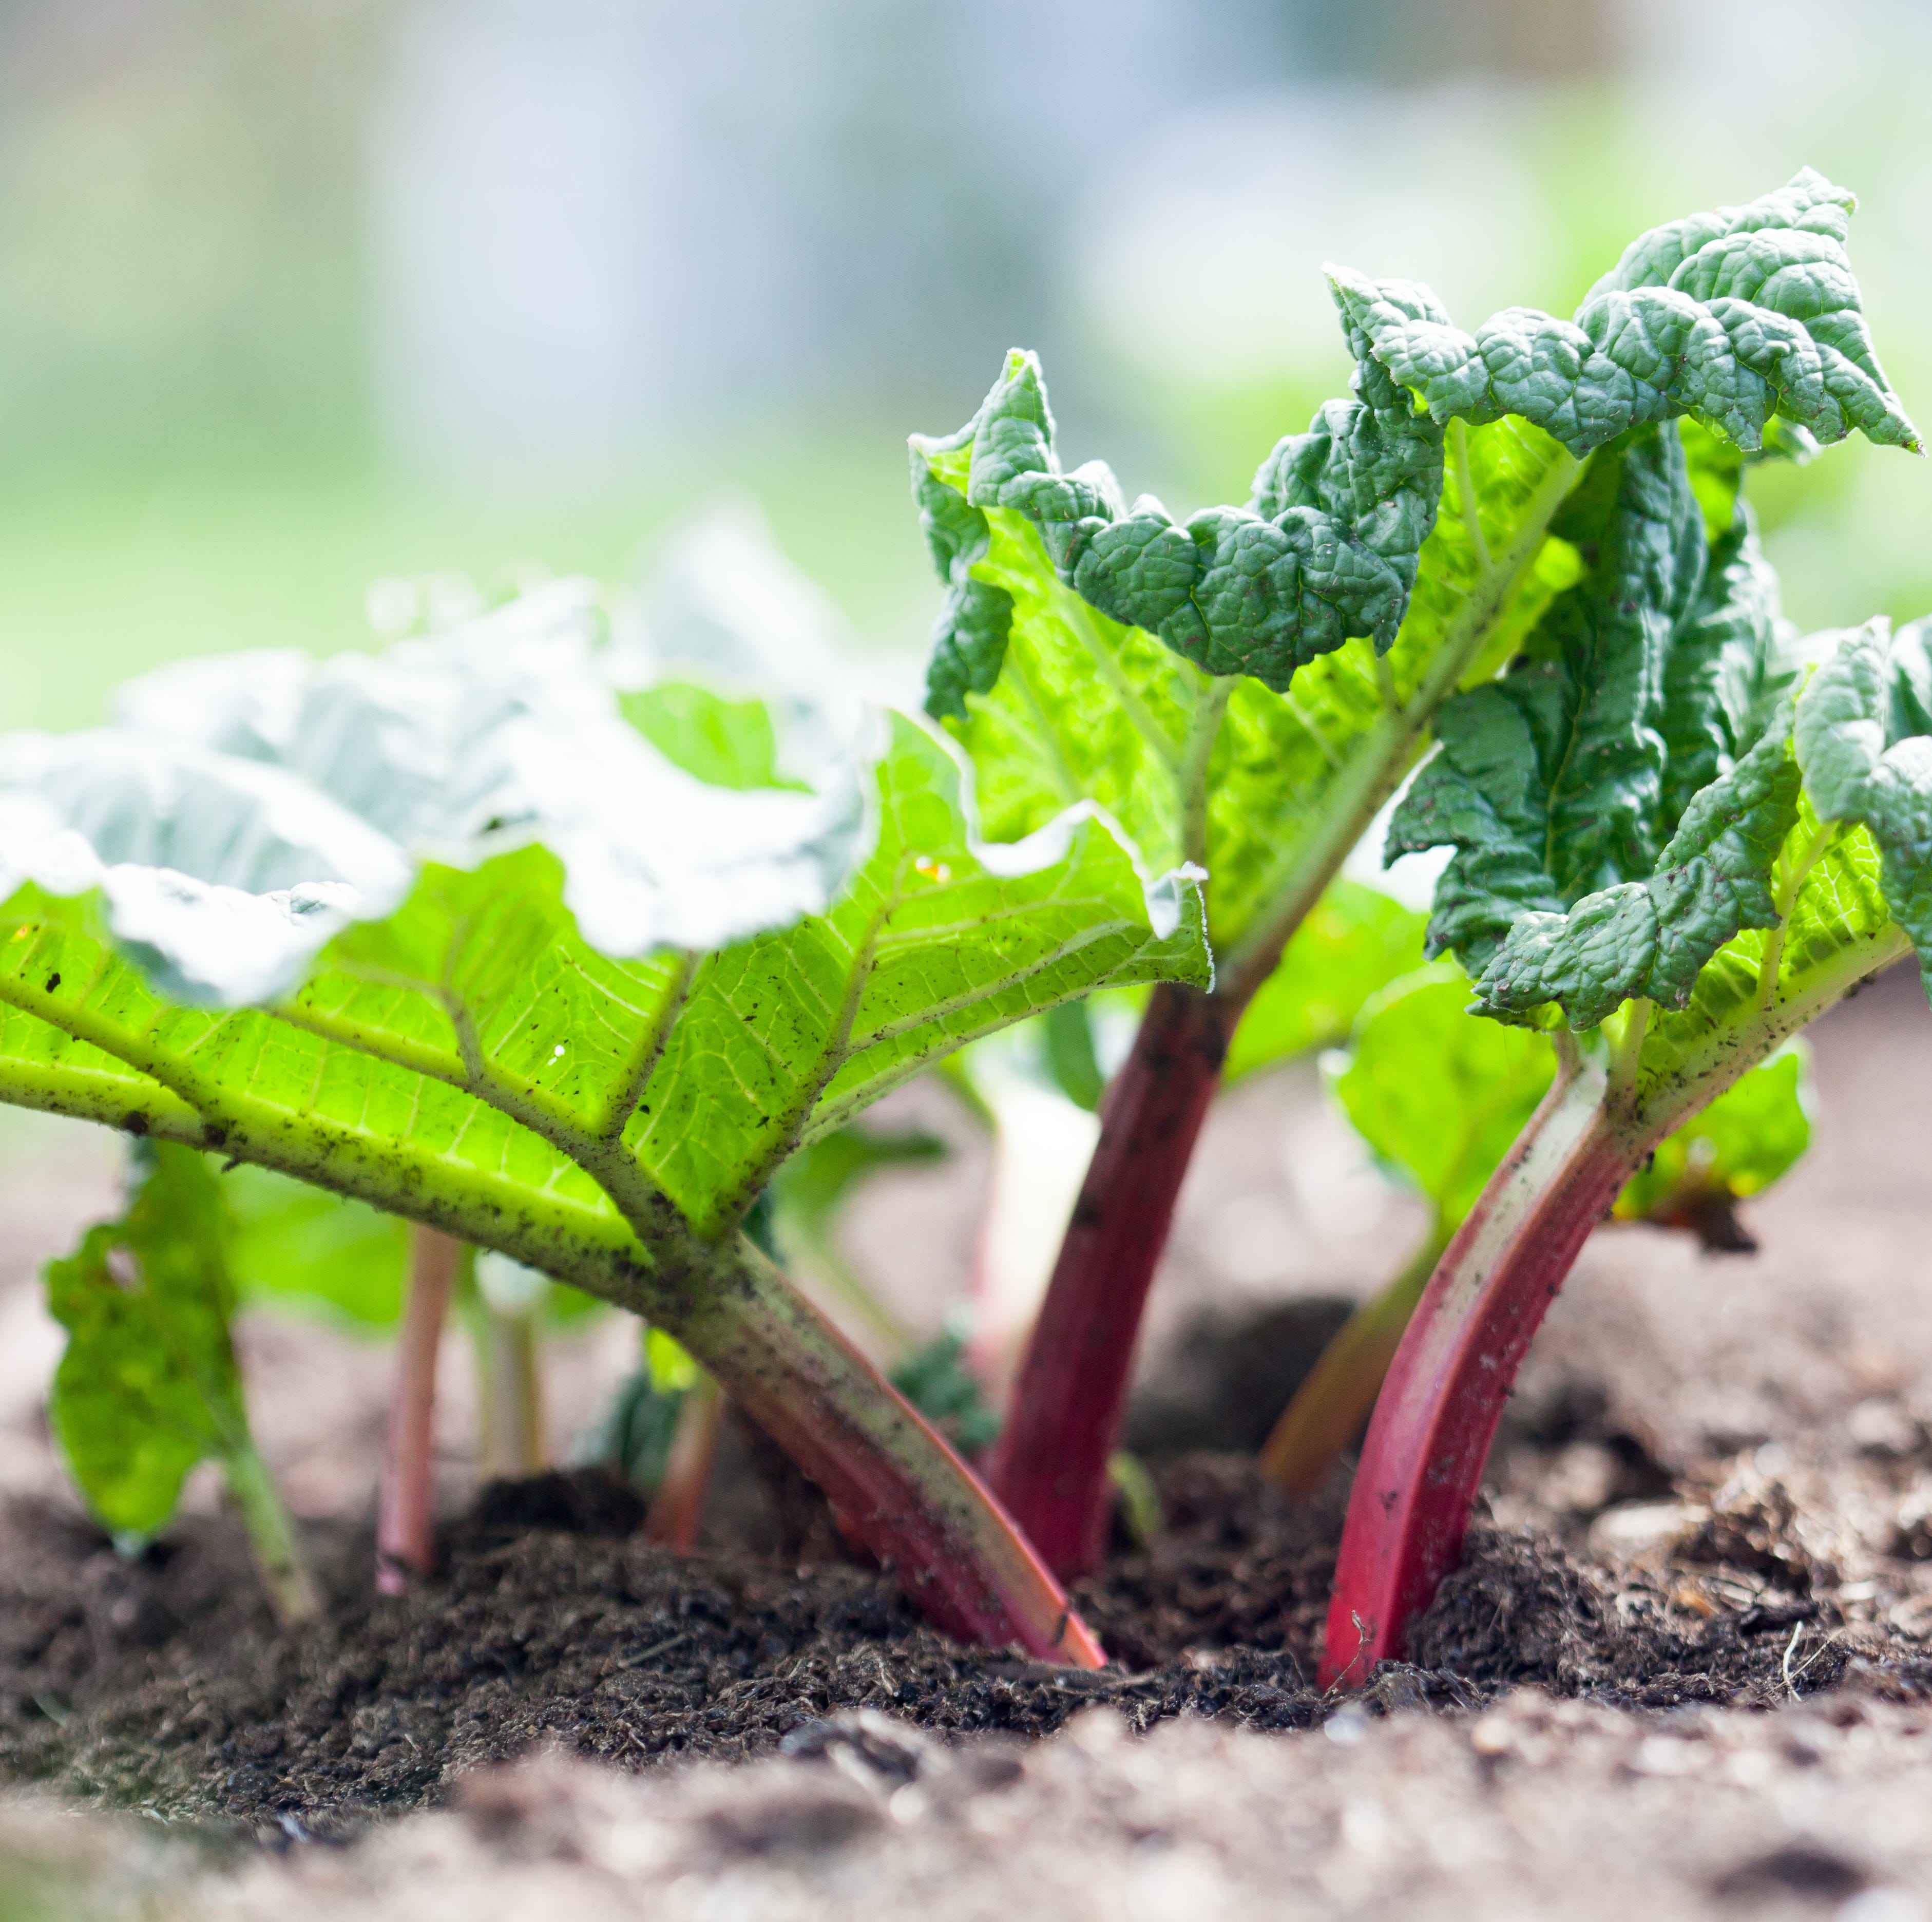 10 vegetables that can kill you if they're not prepared properly